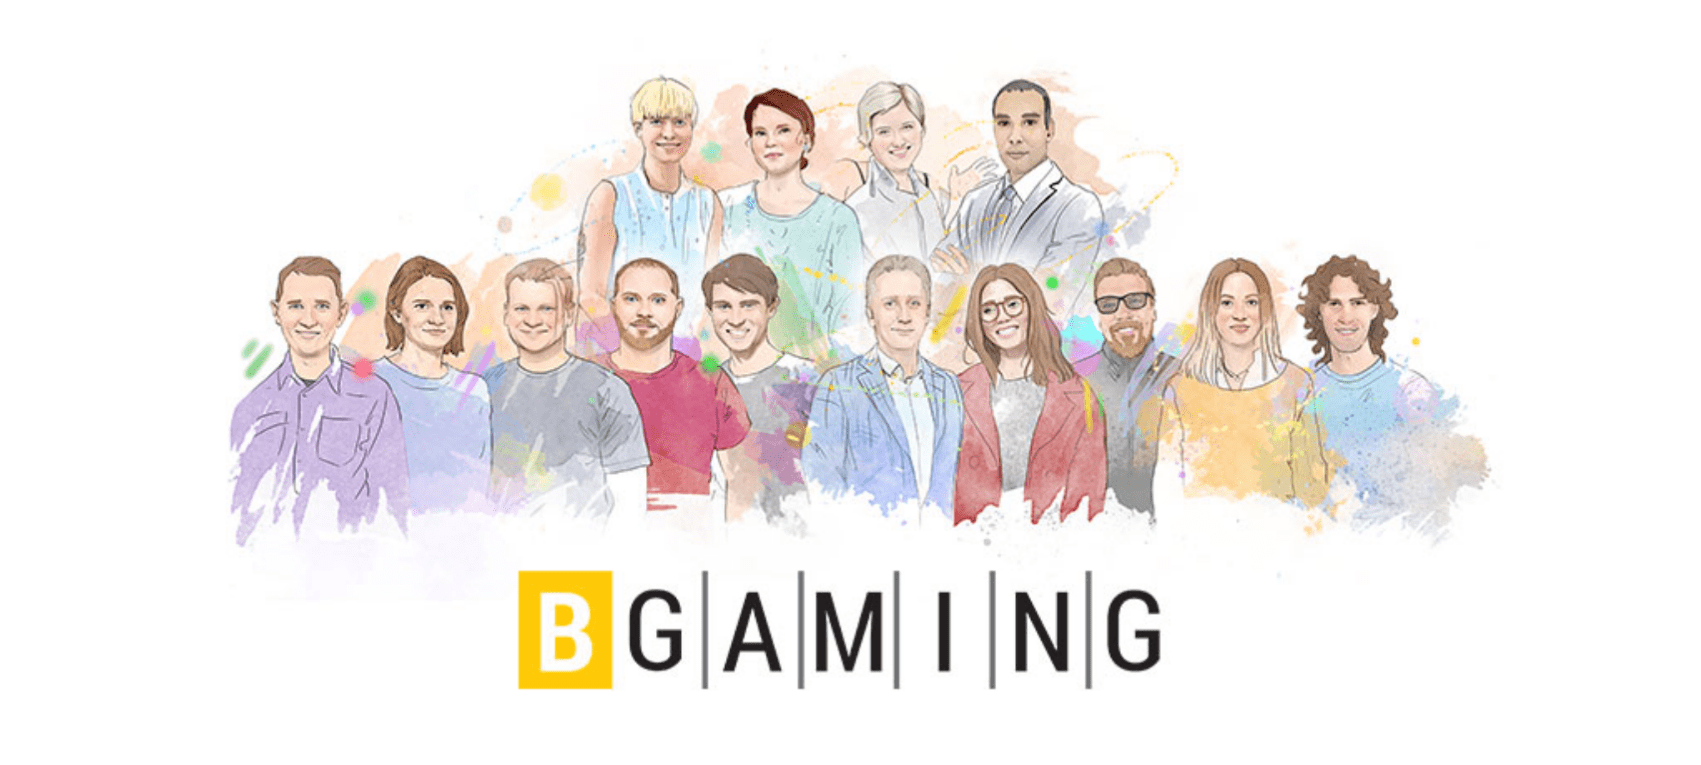 Interview With BGaming's Director, Marina Ostrovtsova